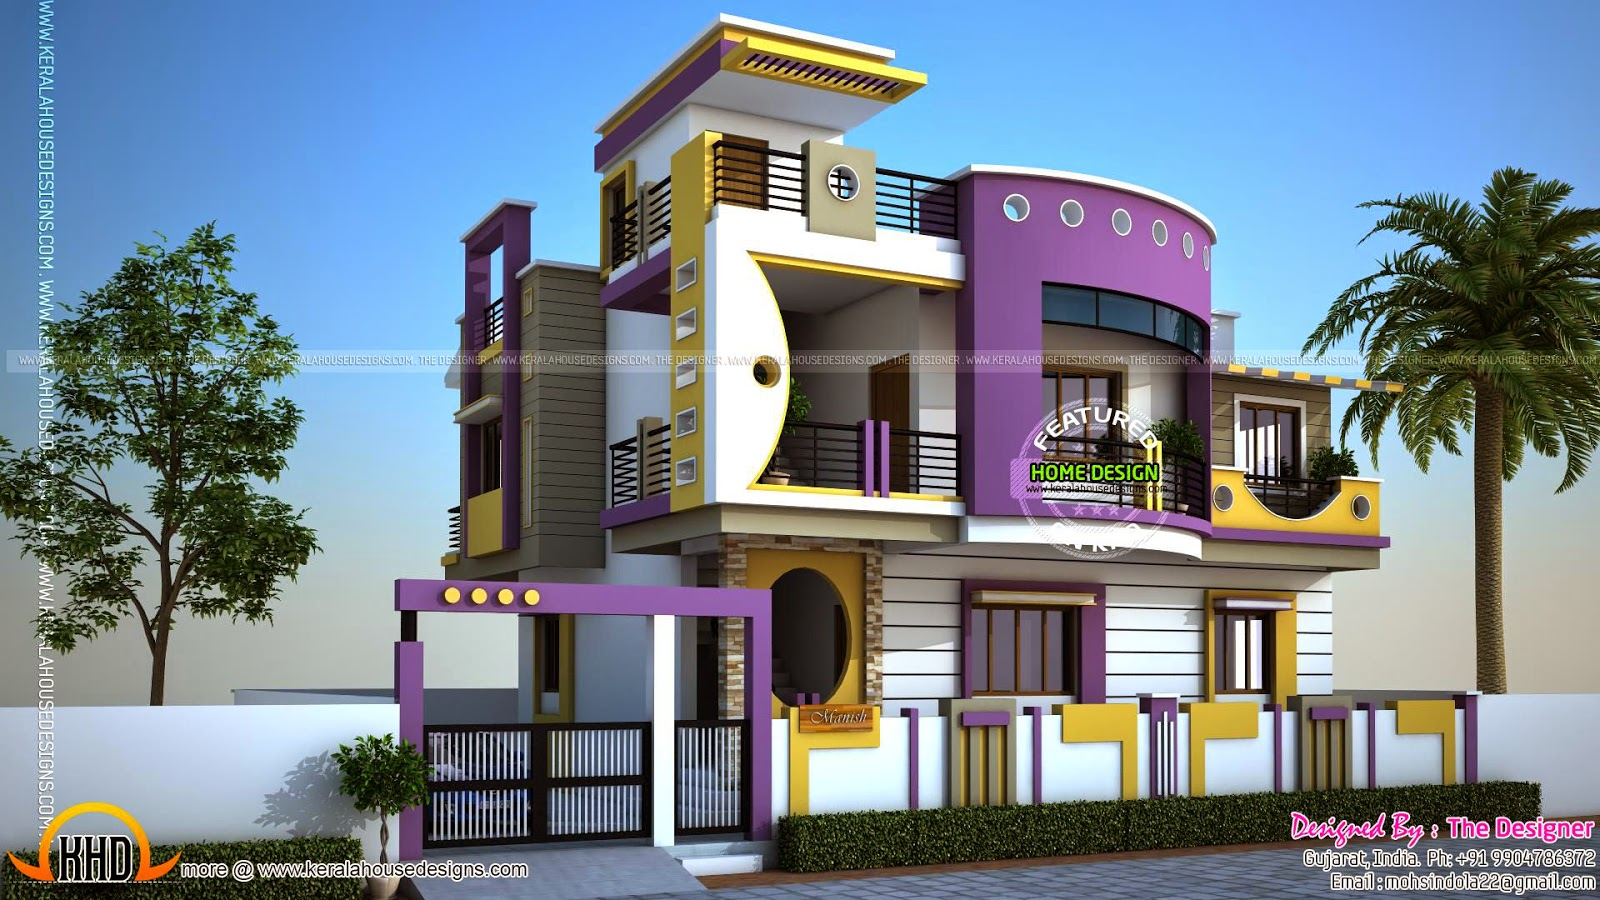 House exterior designs in contemporary style kerala home for House building front design